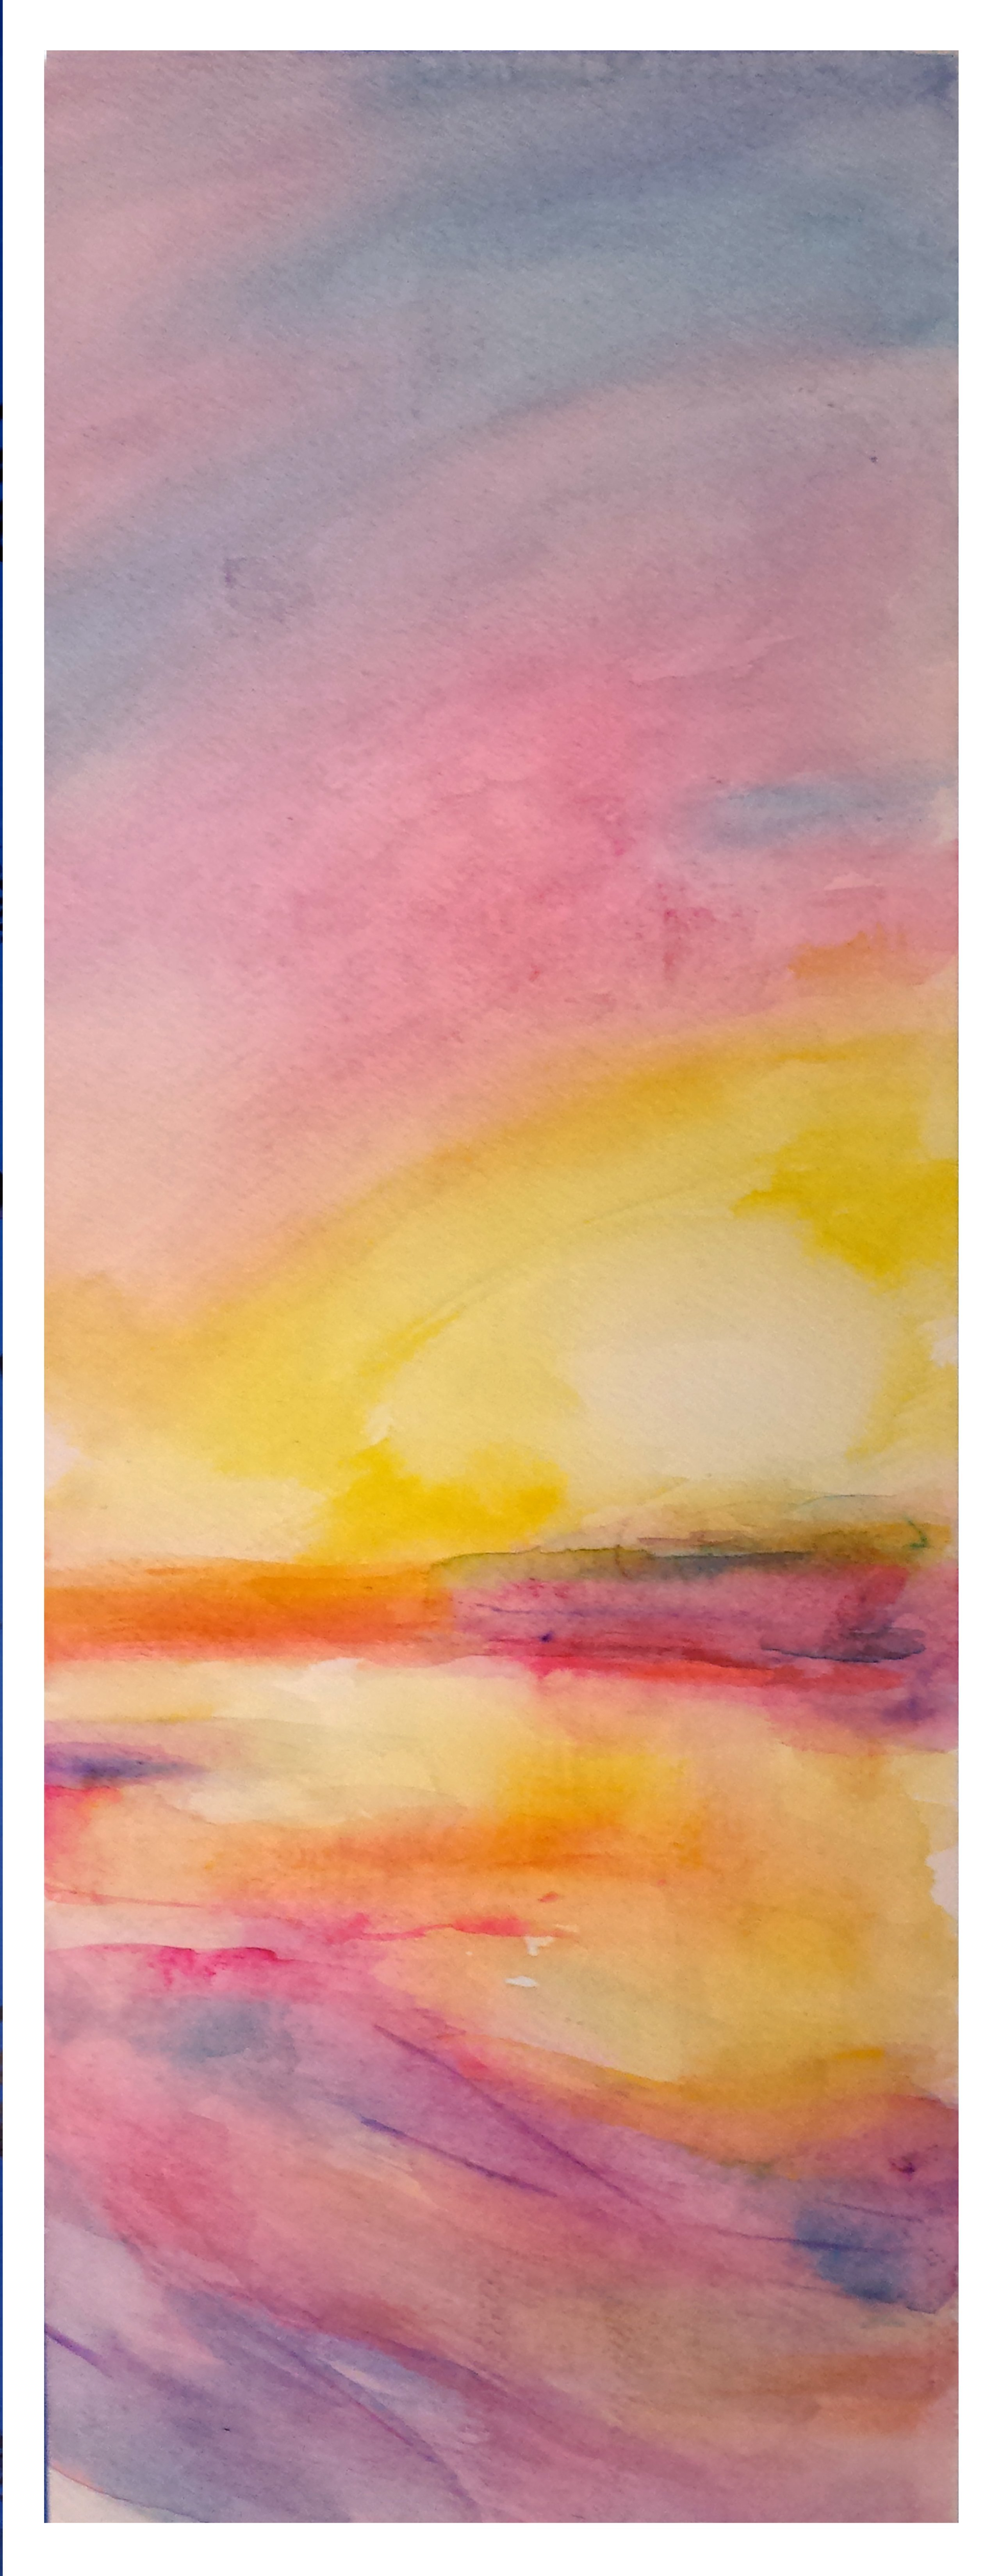 Merrilyne Hendrickson; Daybreak On Spa Creek Slice, 2017, Original Watercolor, 7 x 18 inches. Artwork description: 241 Sometimes the eastern sky at sunrise melts into the water...